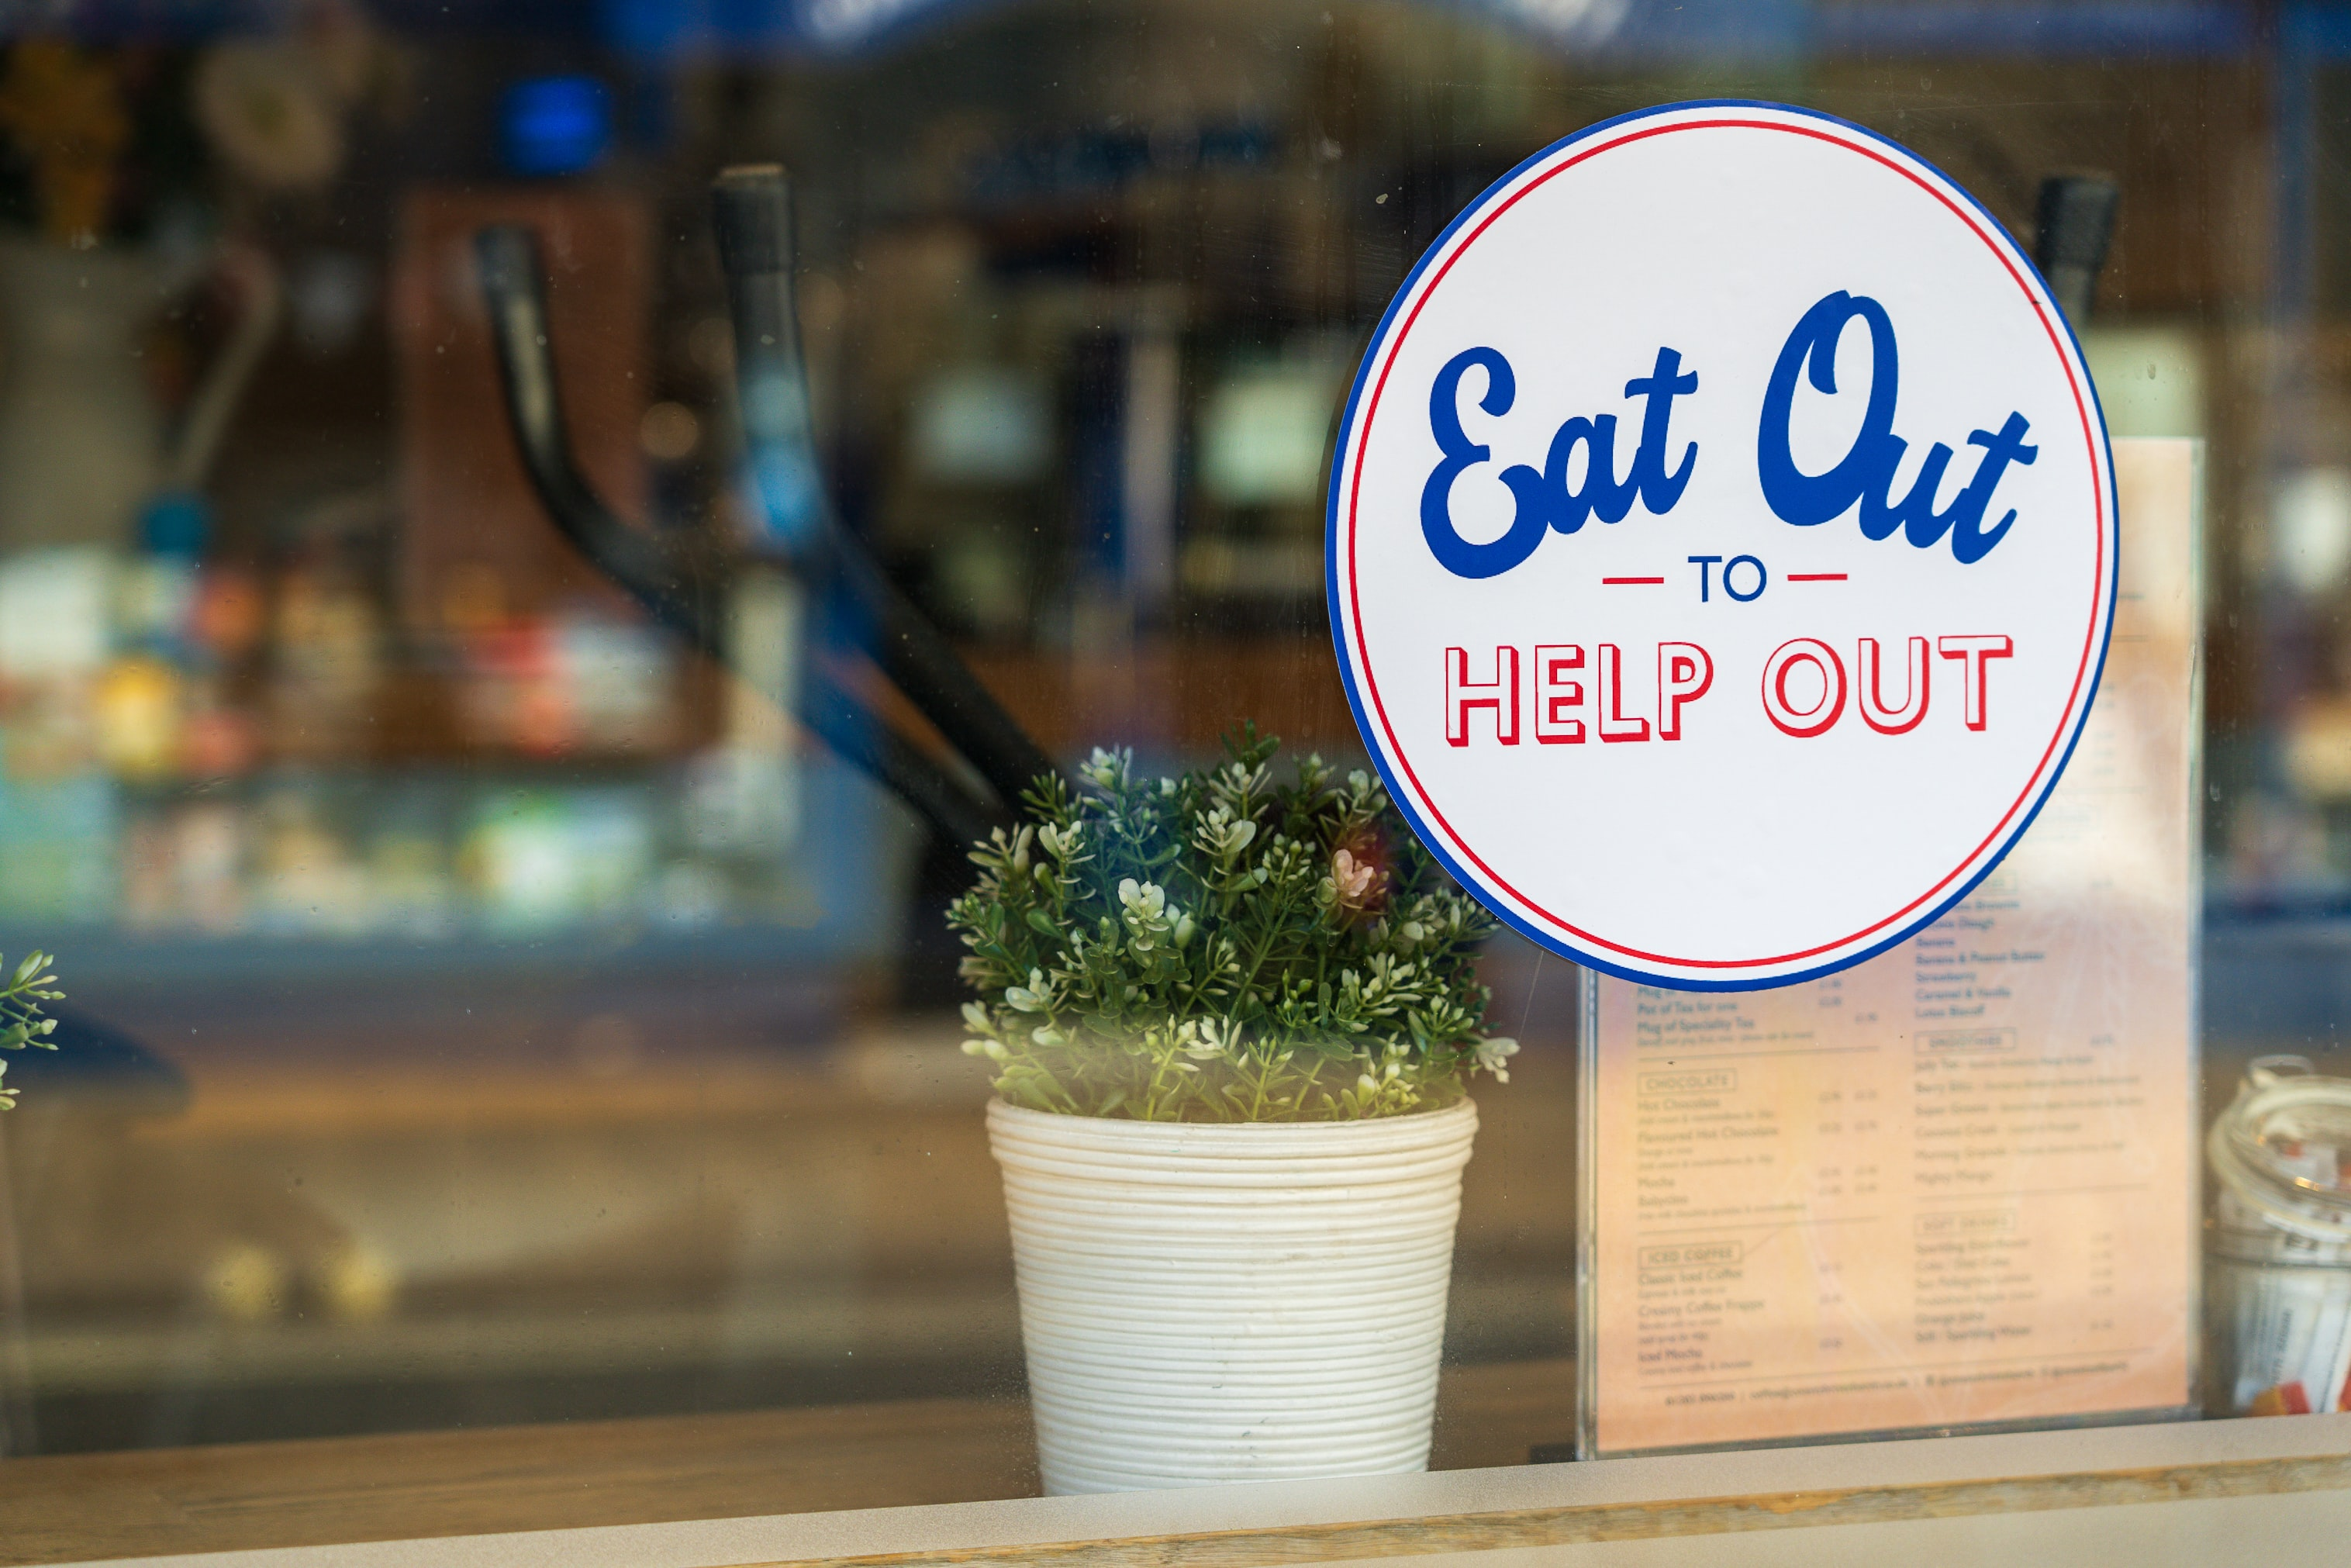 Eat Out to Help Out logo in a window next to a plant